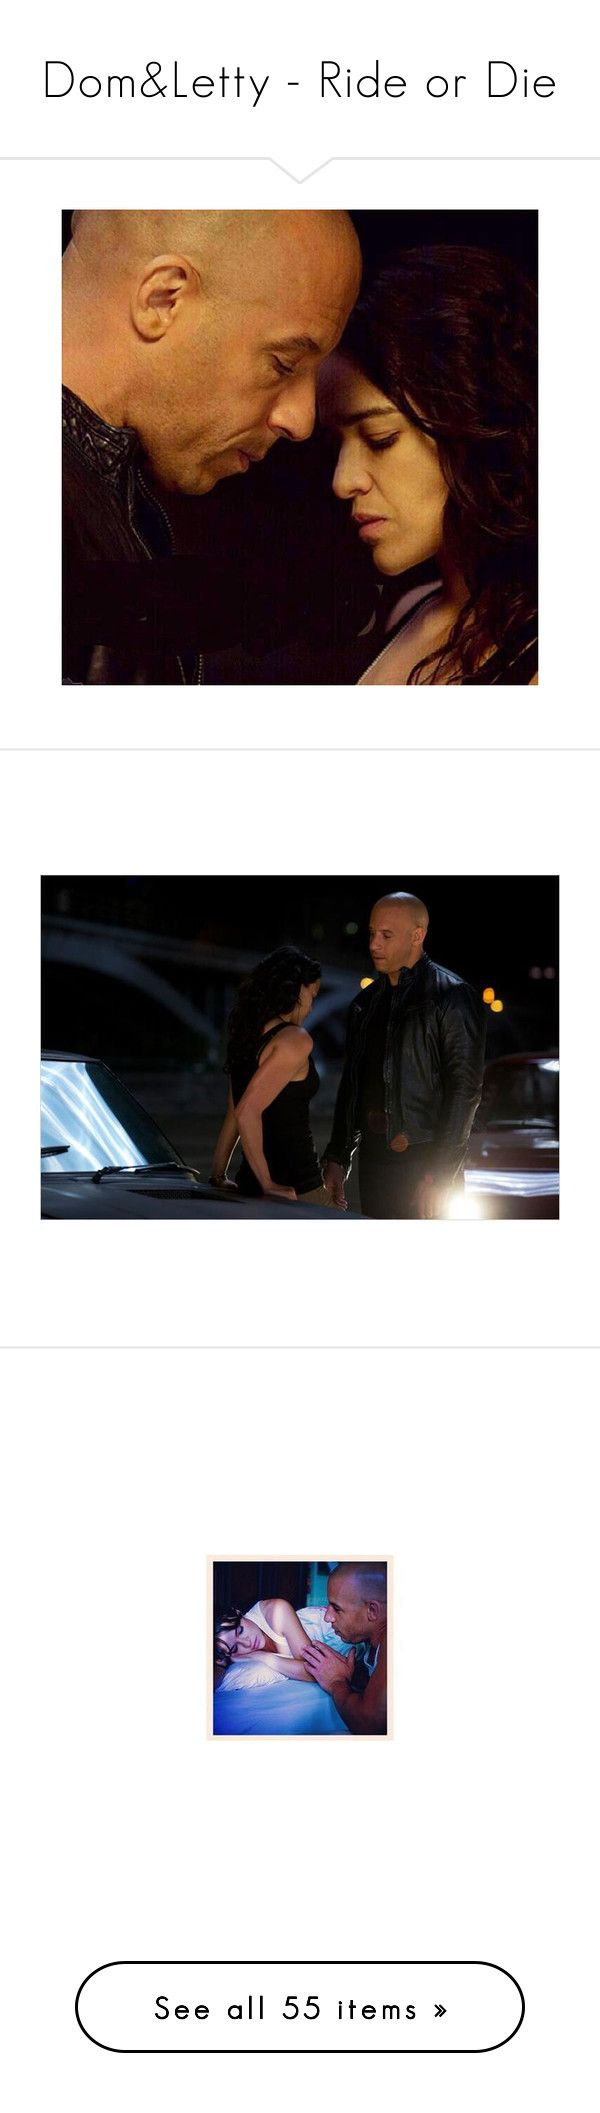 """""""Dom&Letty - Ride or Die"""" by sunrise21 ❤ liked on Polyvore featuring movies, vin diesel, fast & furious, fast and furious, michelle rodriguez, people, the fast and the furious, fast and the furious, actresses and men"""